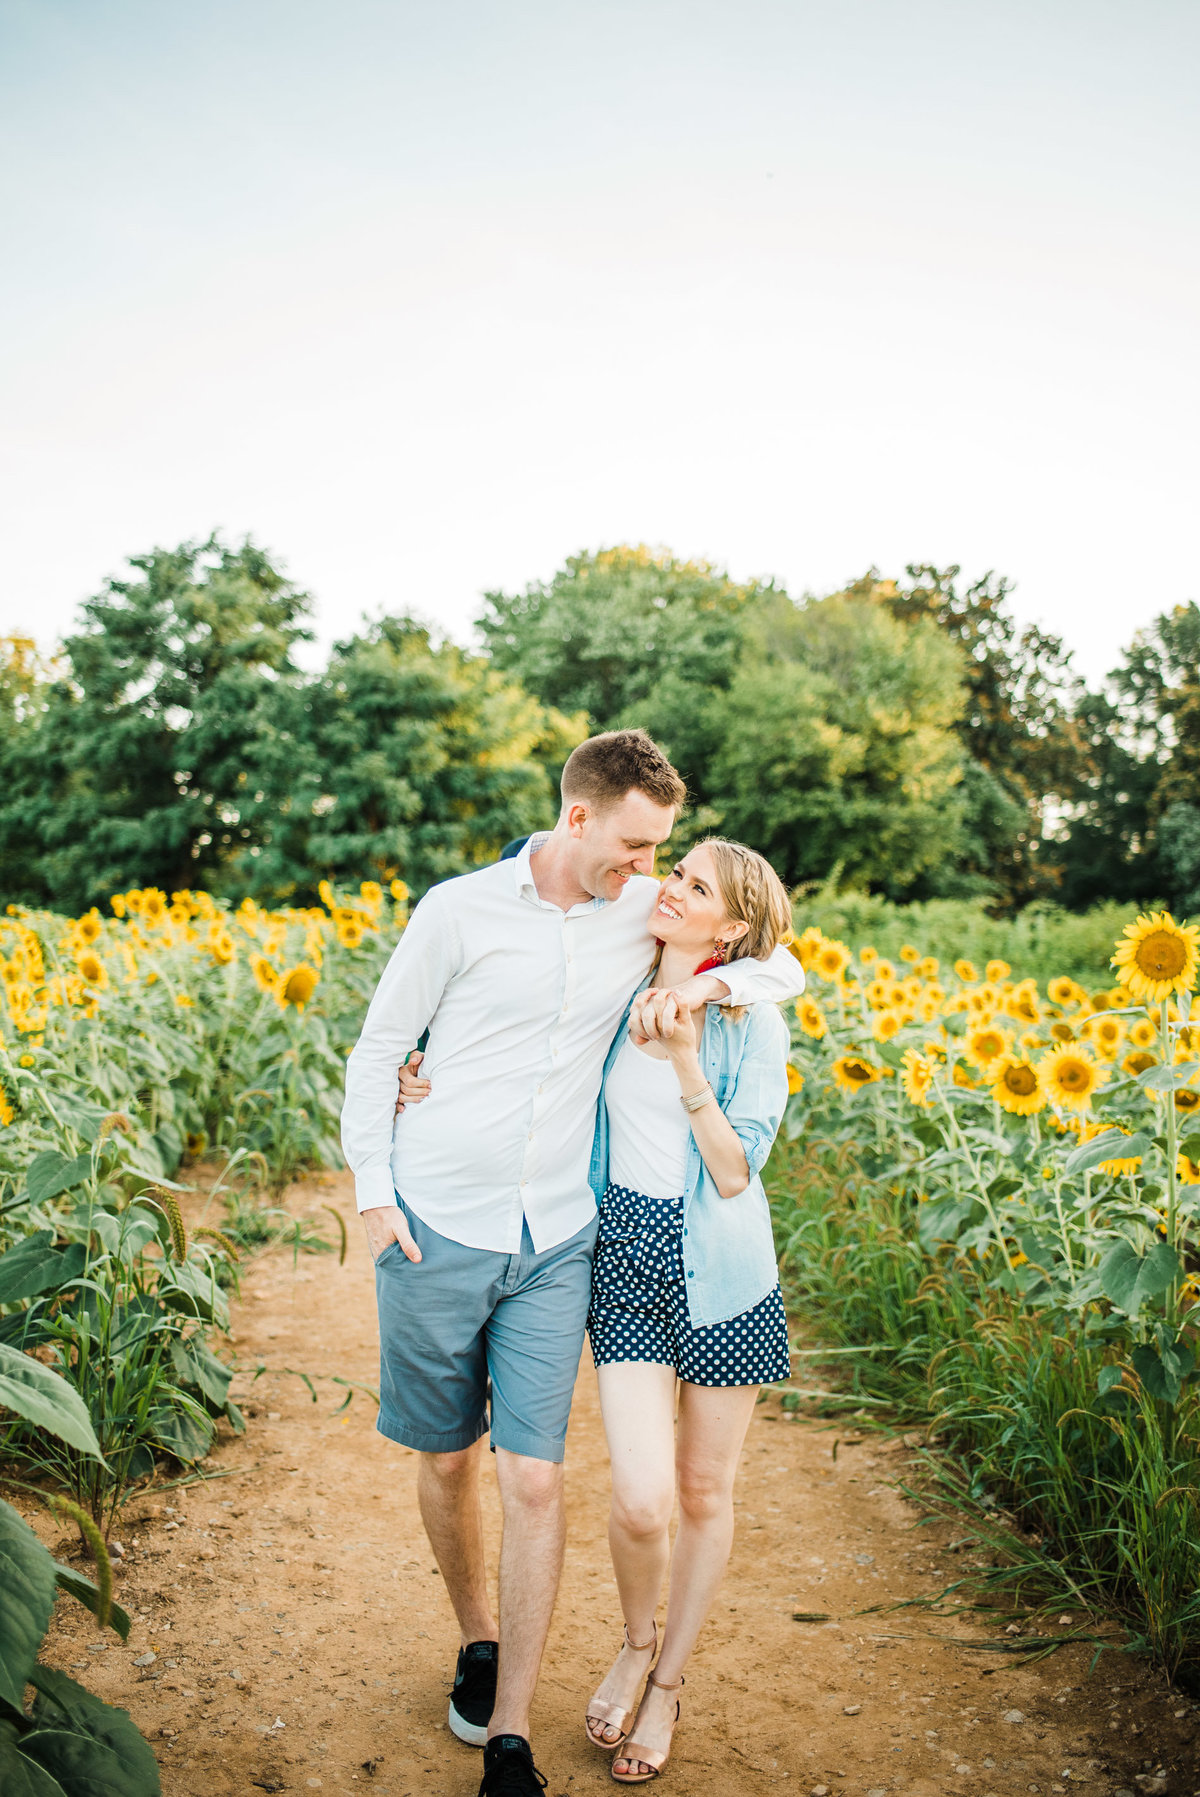 Leah and Andrew Sunflowers-1 copy